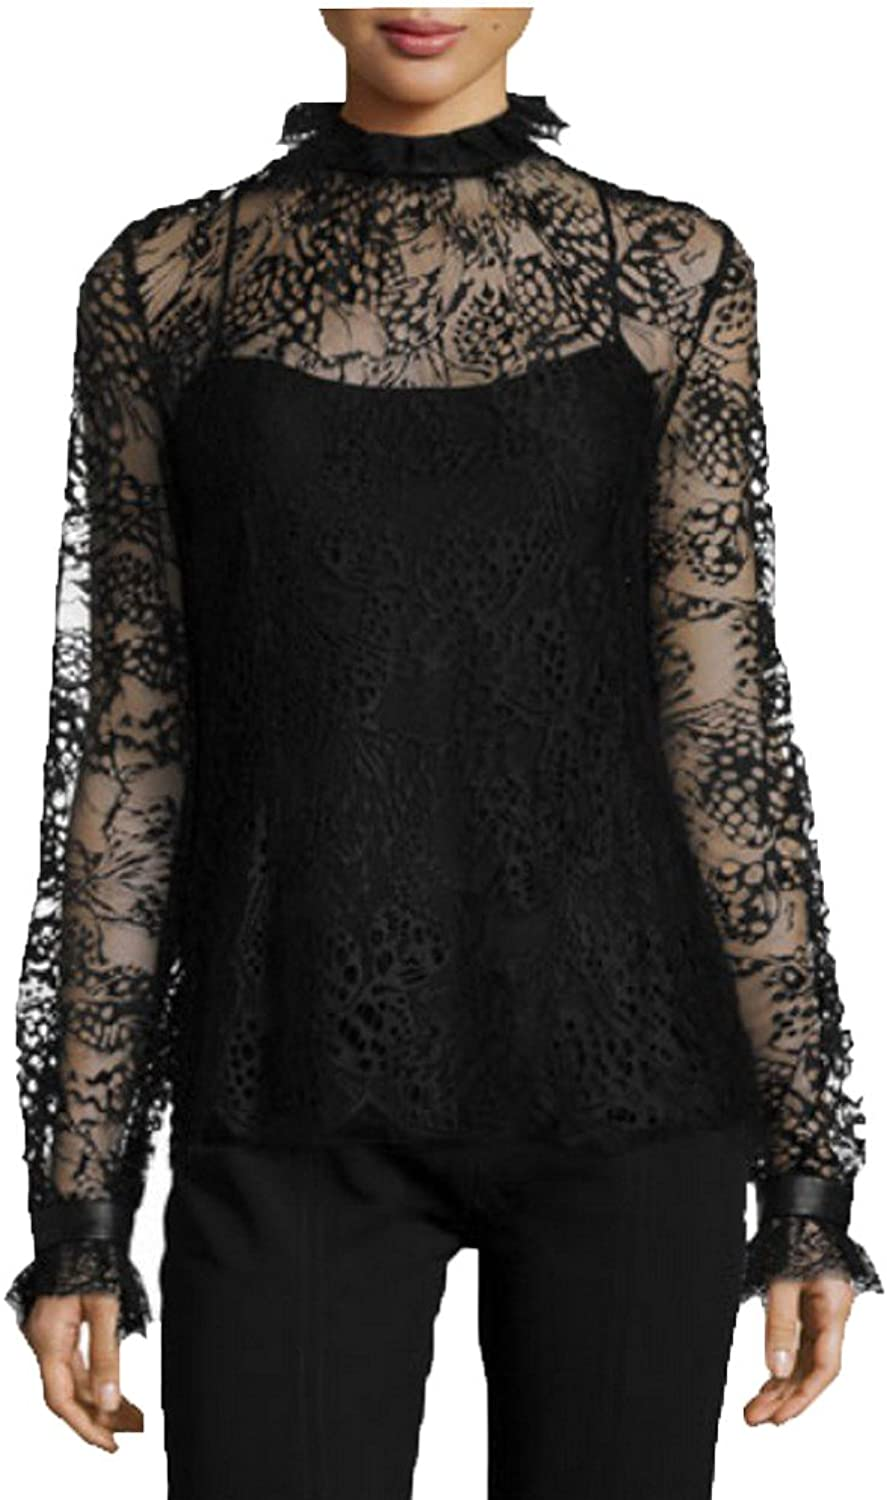 Angel&Lily Lace Turtleneck Scalloped Cuffs Party top Blouse Plus 1x10x